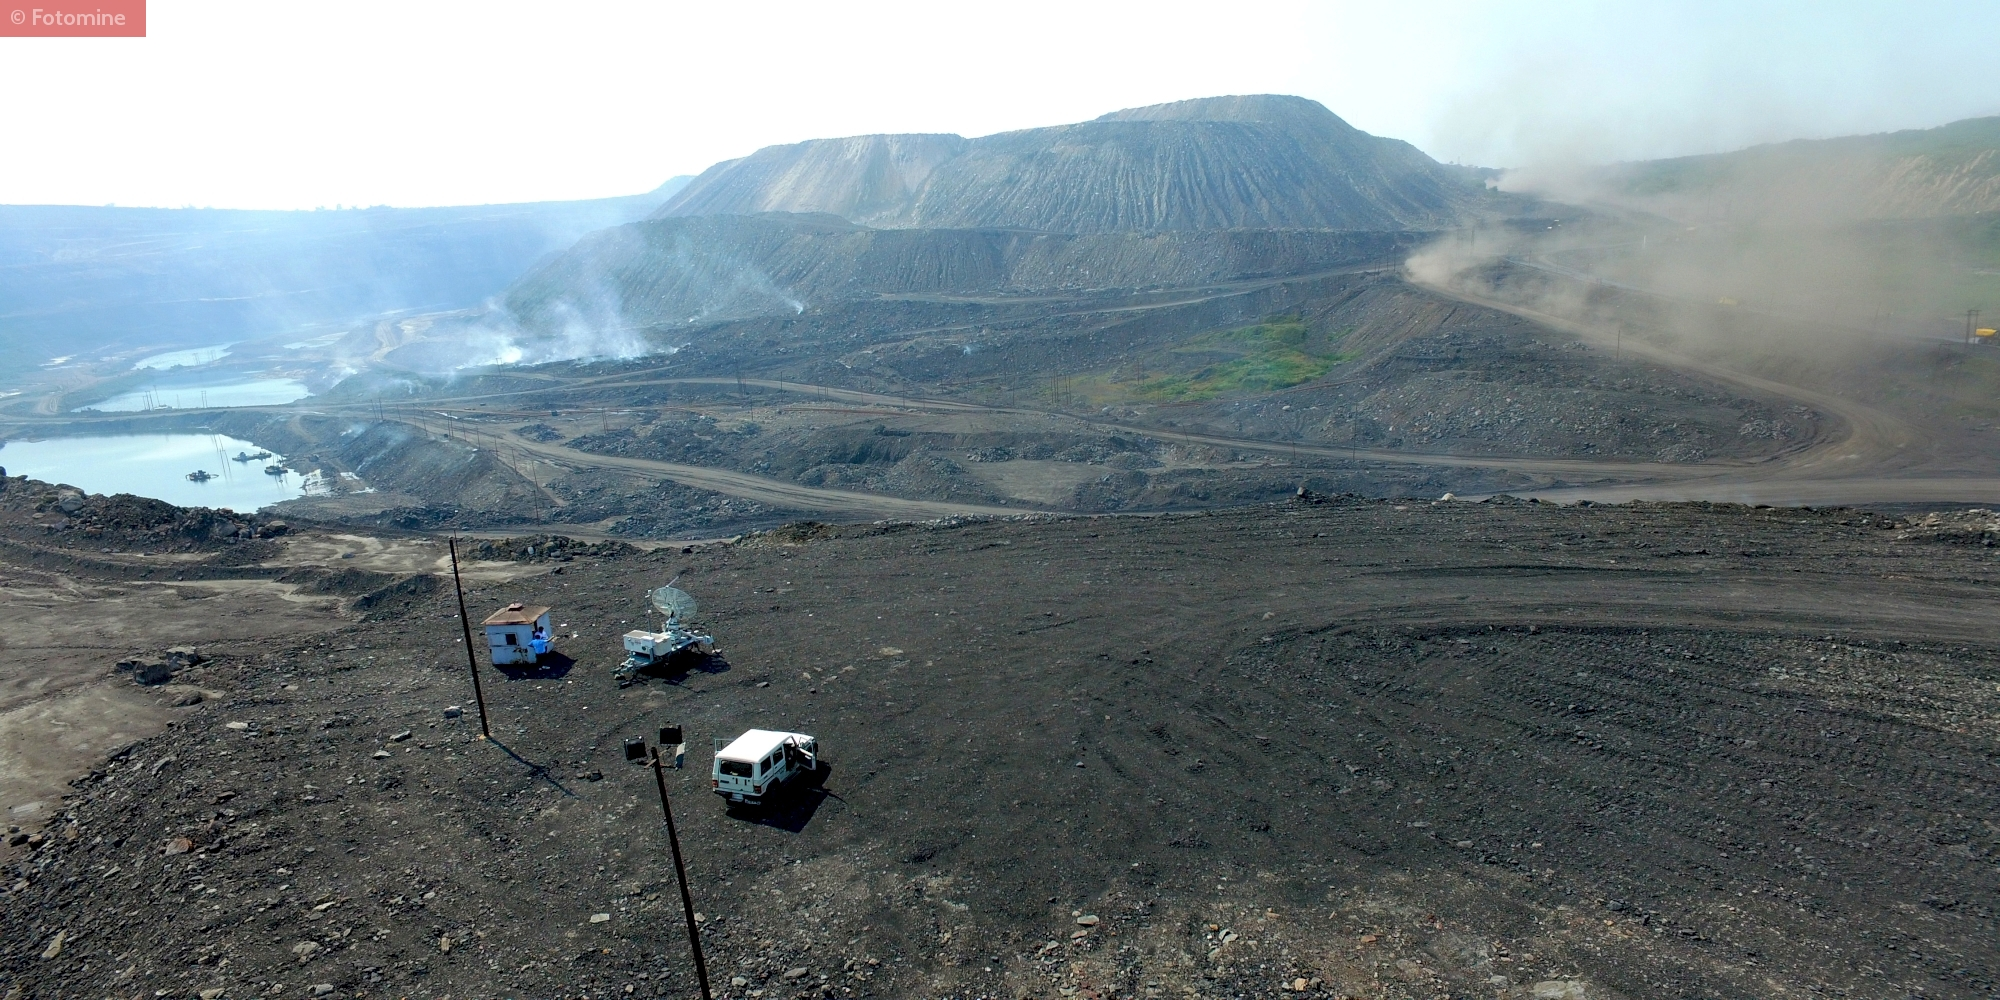 Overview of Coal Surface Mines